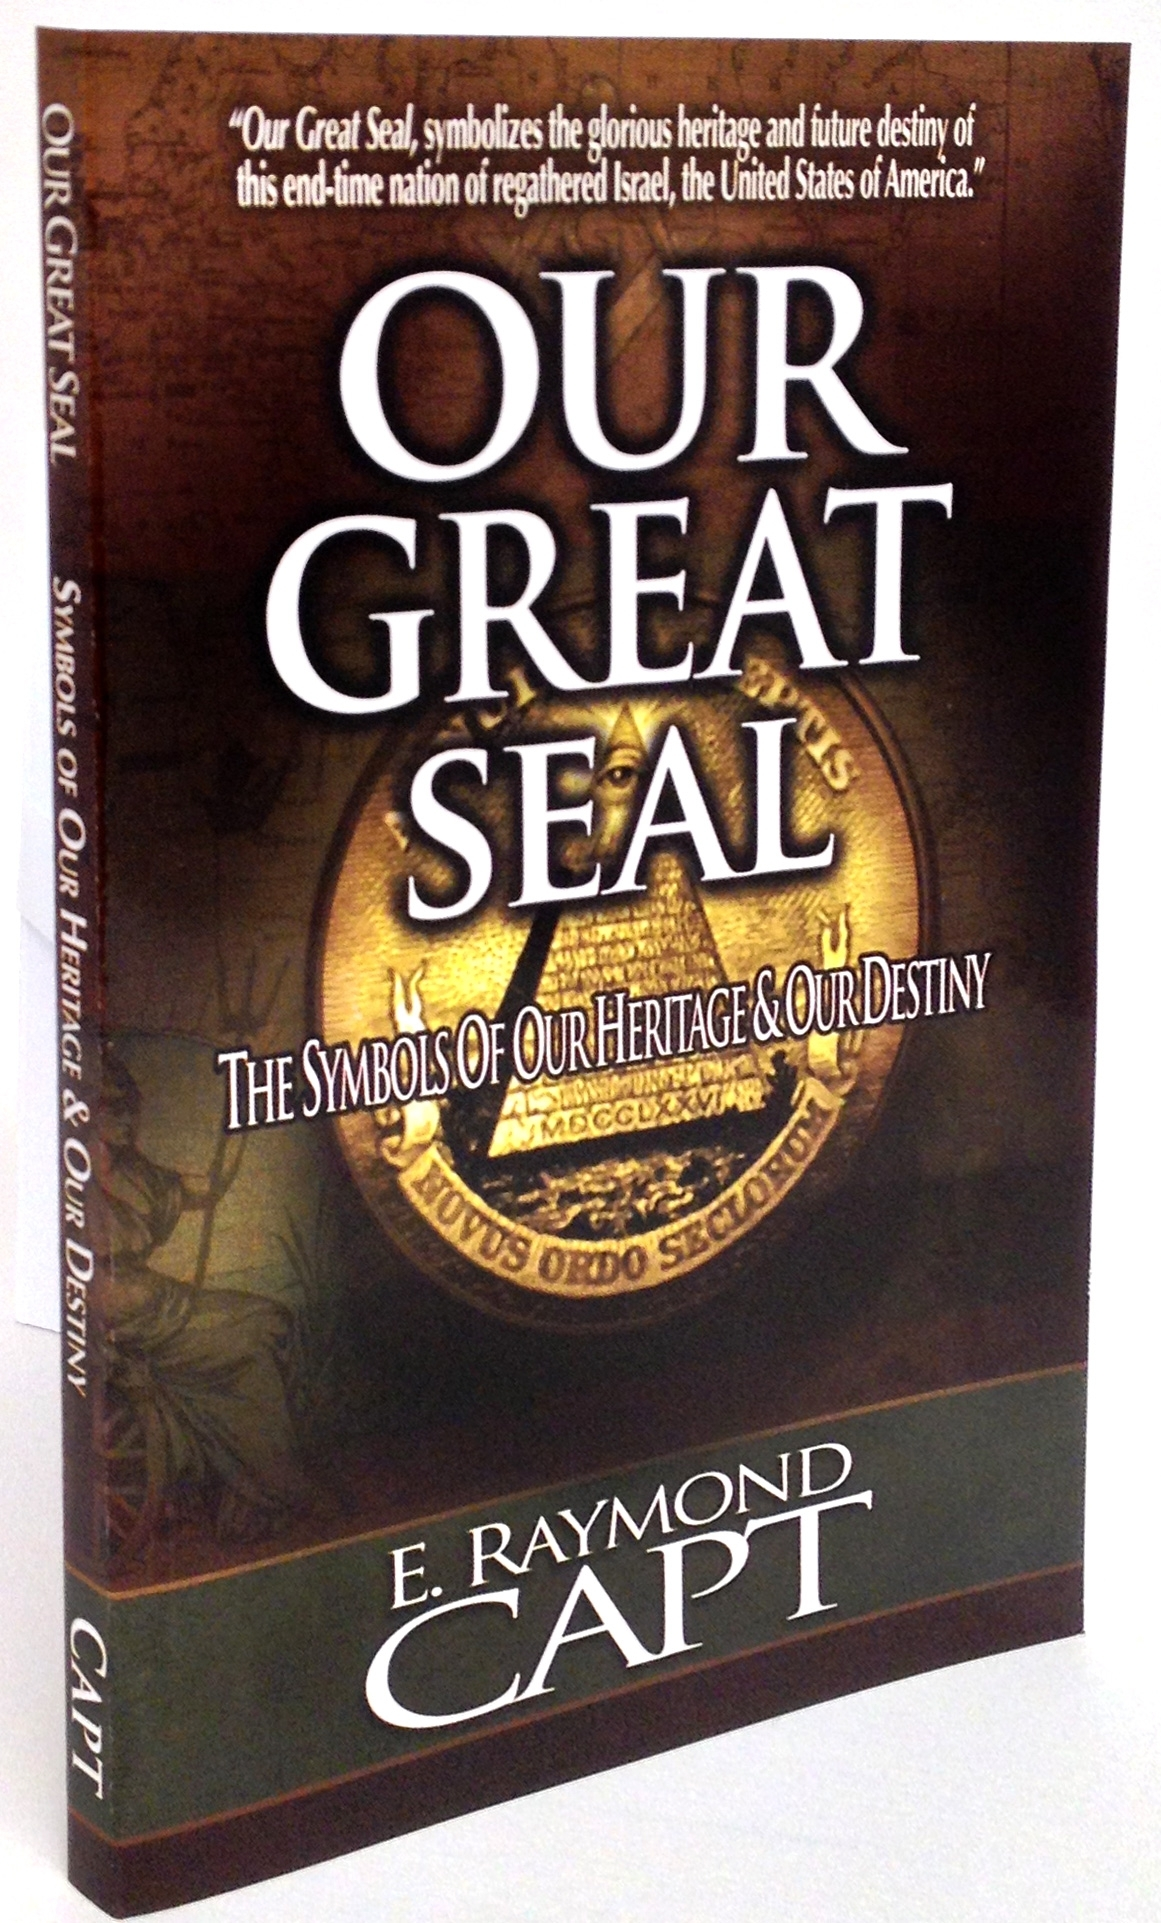 Our Great Seal  [Revised & Expanded]... Many believe its creation was directed by an unseen hand.